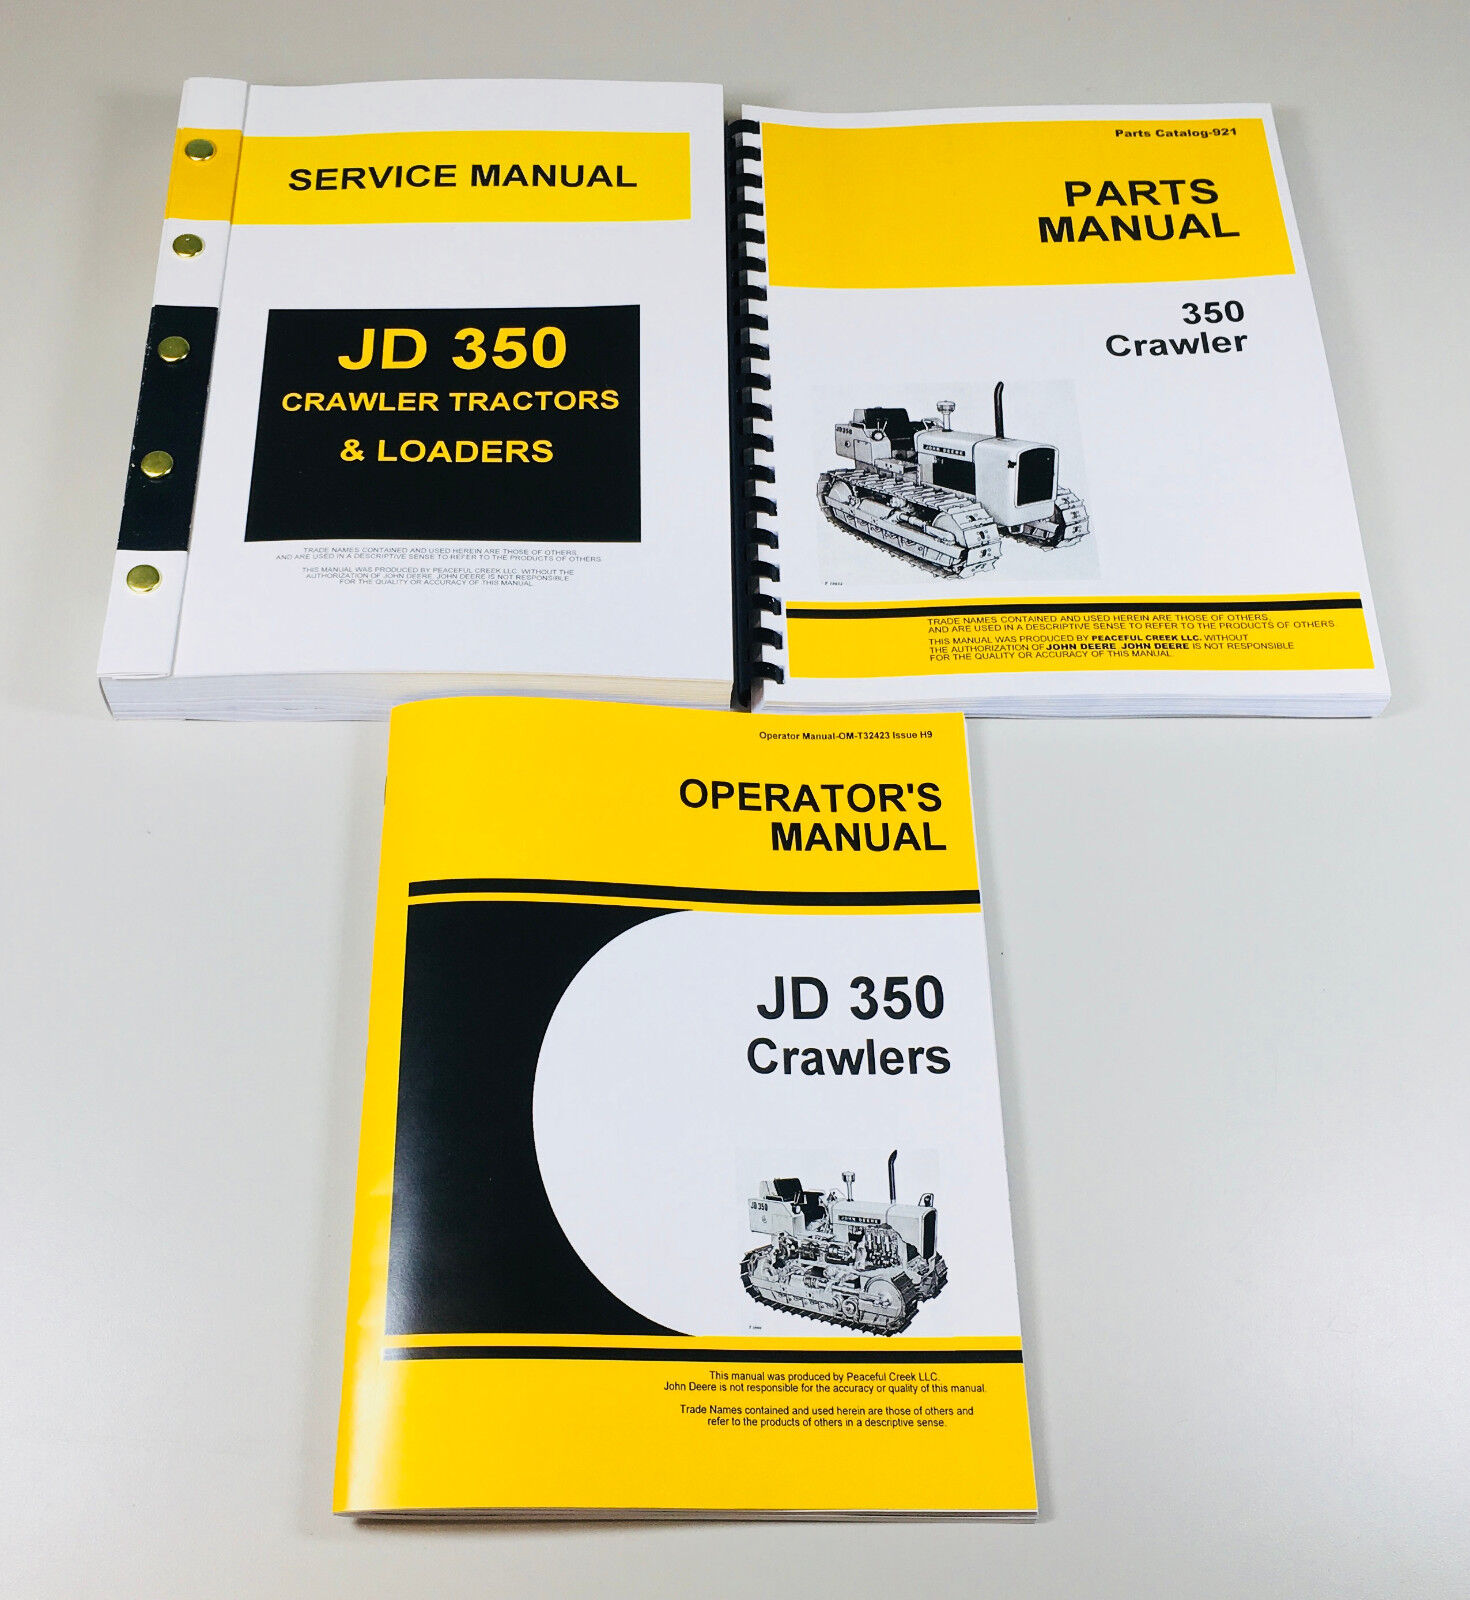 Details about SERVICE PARTS OPERATORS MANUAL SET FOR JOHN DEERE 350 on tractor door latch, tractor cab parts, tractor clutch assembly, tractor brakes, tractor oil pump, tractor flywheel, tractor intake manifold, tractor truck bed, tractor u joint, tractor engine, tractor axles, tractor hydraulic lines, tractor relay, tractor air filter, tractor front end, tractor neutral safety switch, tractor power steering, tractor winch mount, tractor air lines, tractor throttle cable,